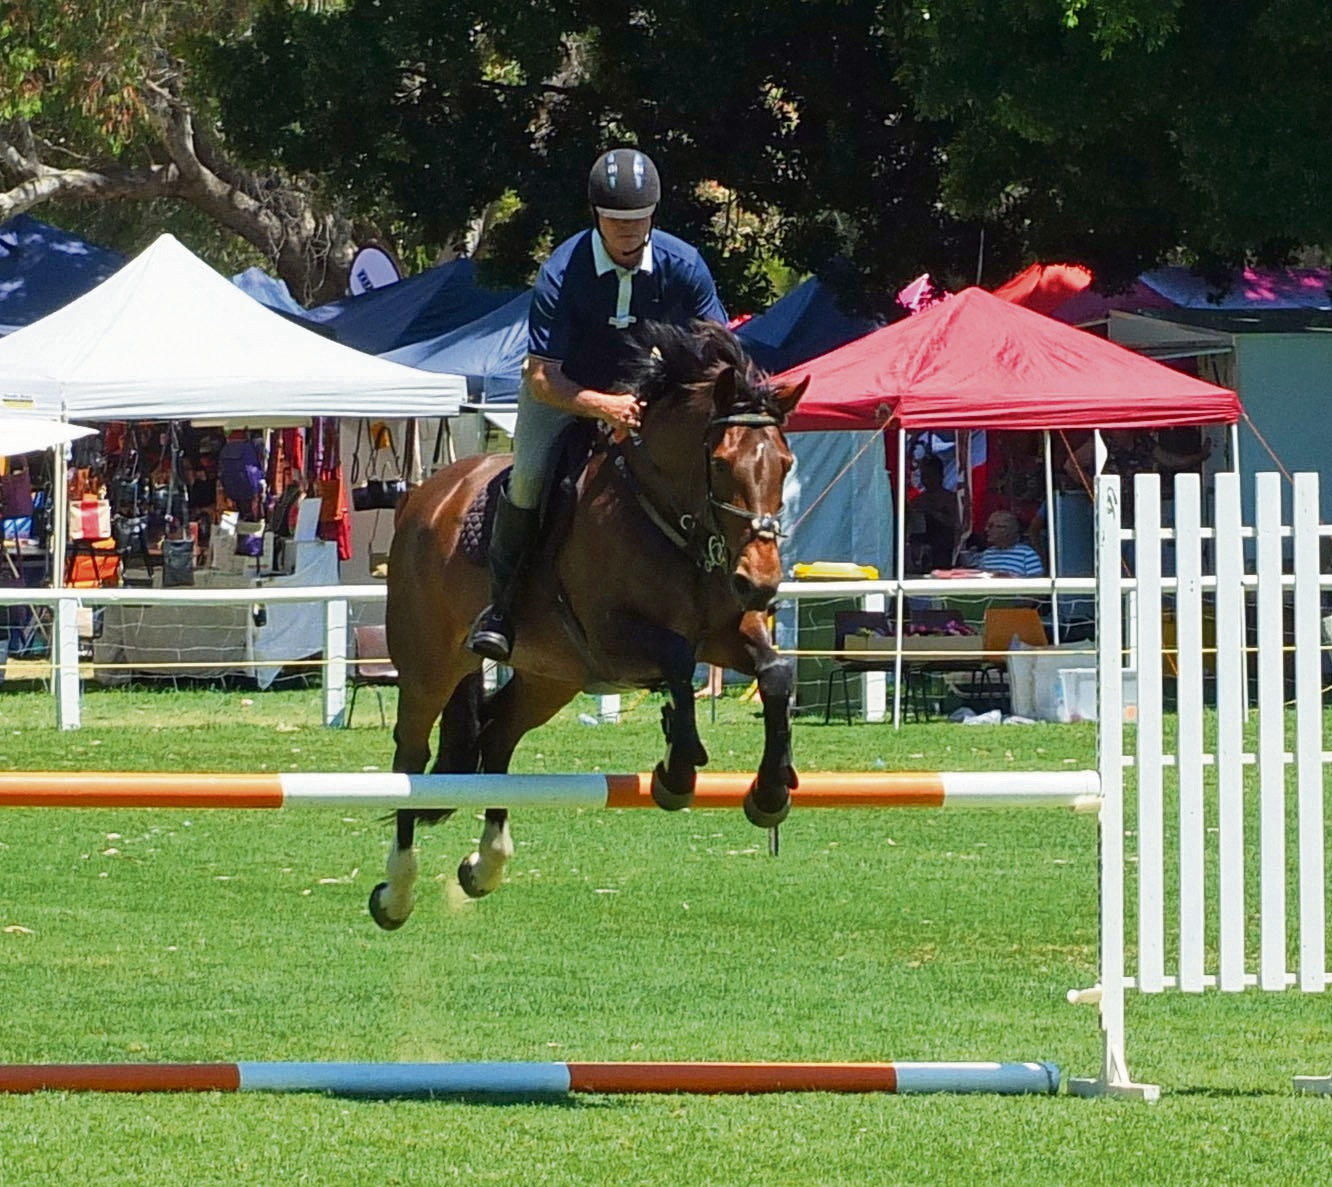 A show jumper easily clears a hurdle.